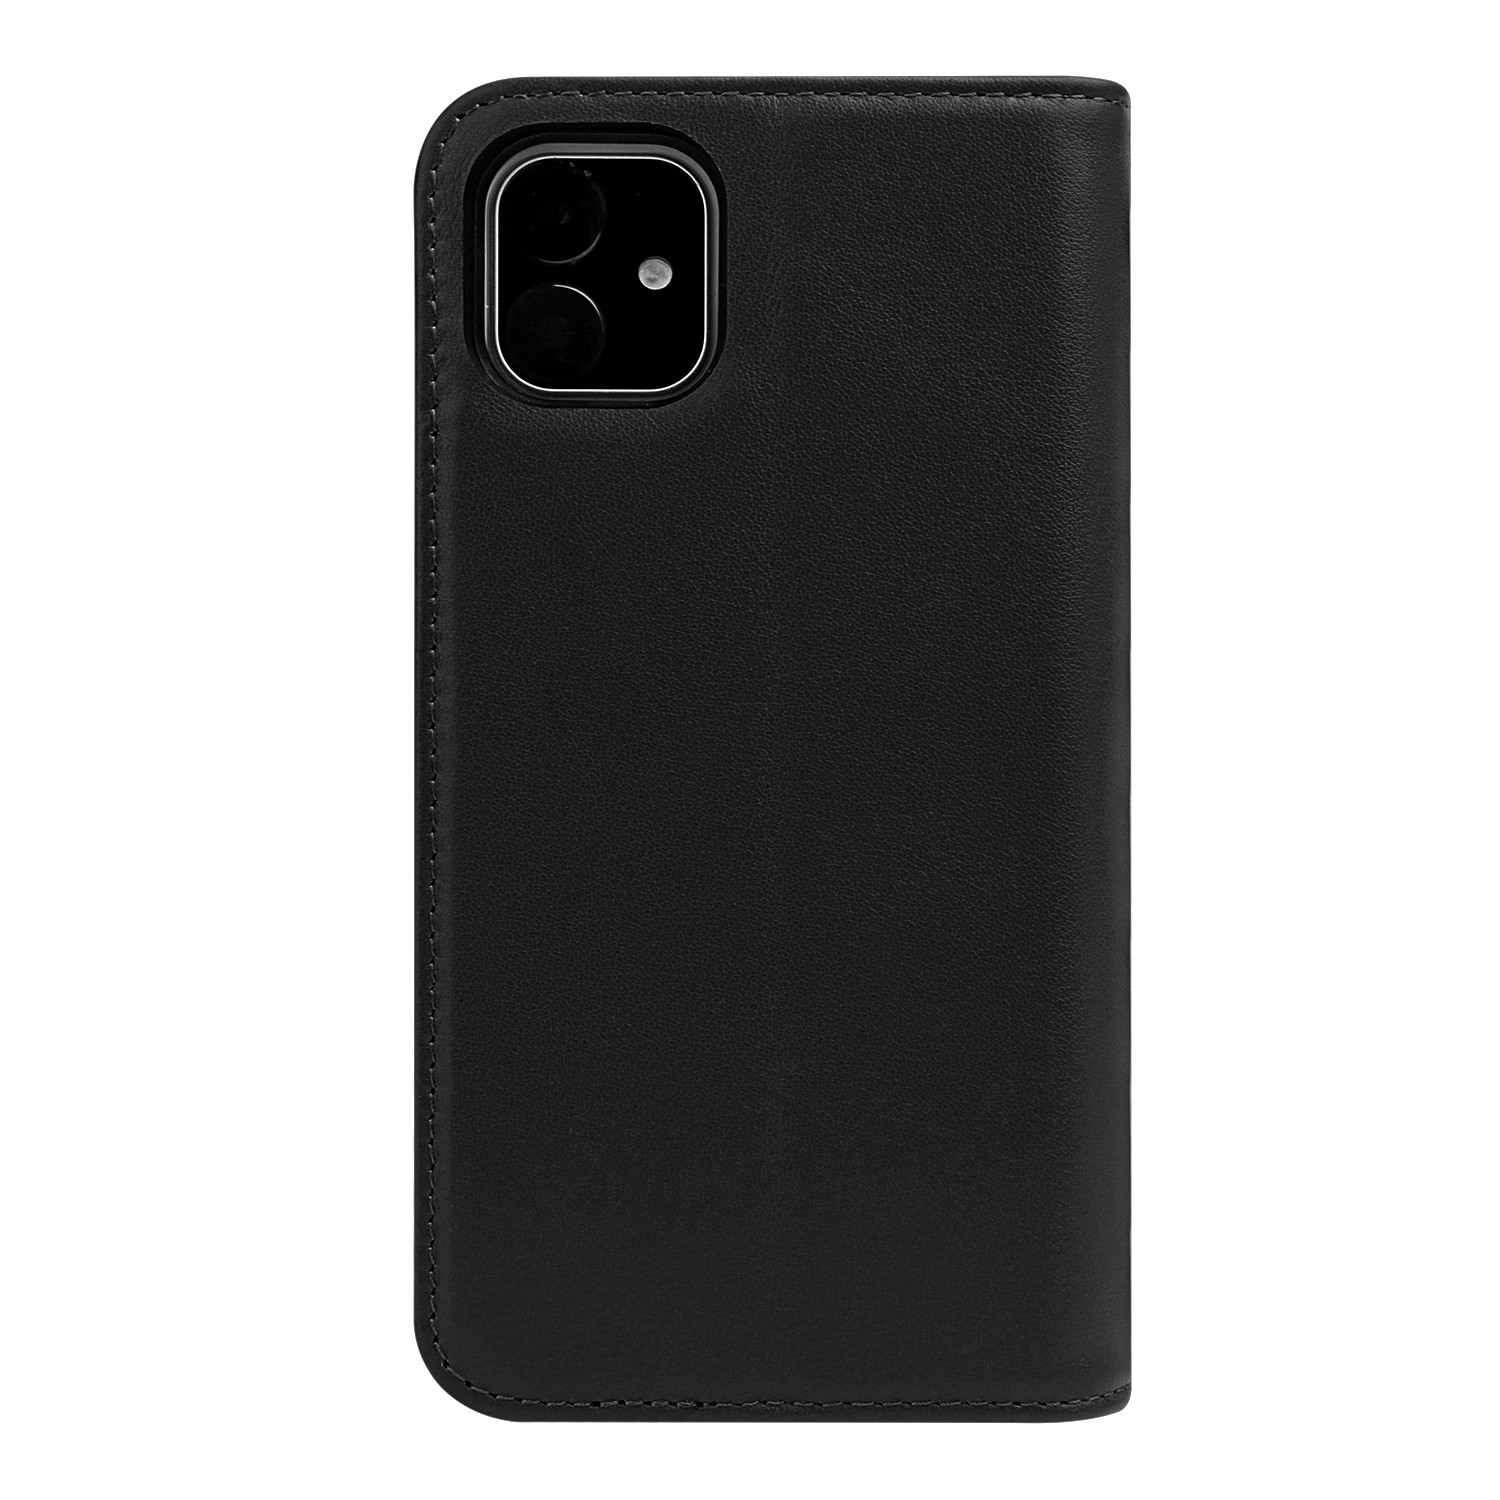 AIVI good quality mobile back cover for iPhone 11 factory price for iPhone11-2